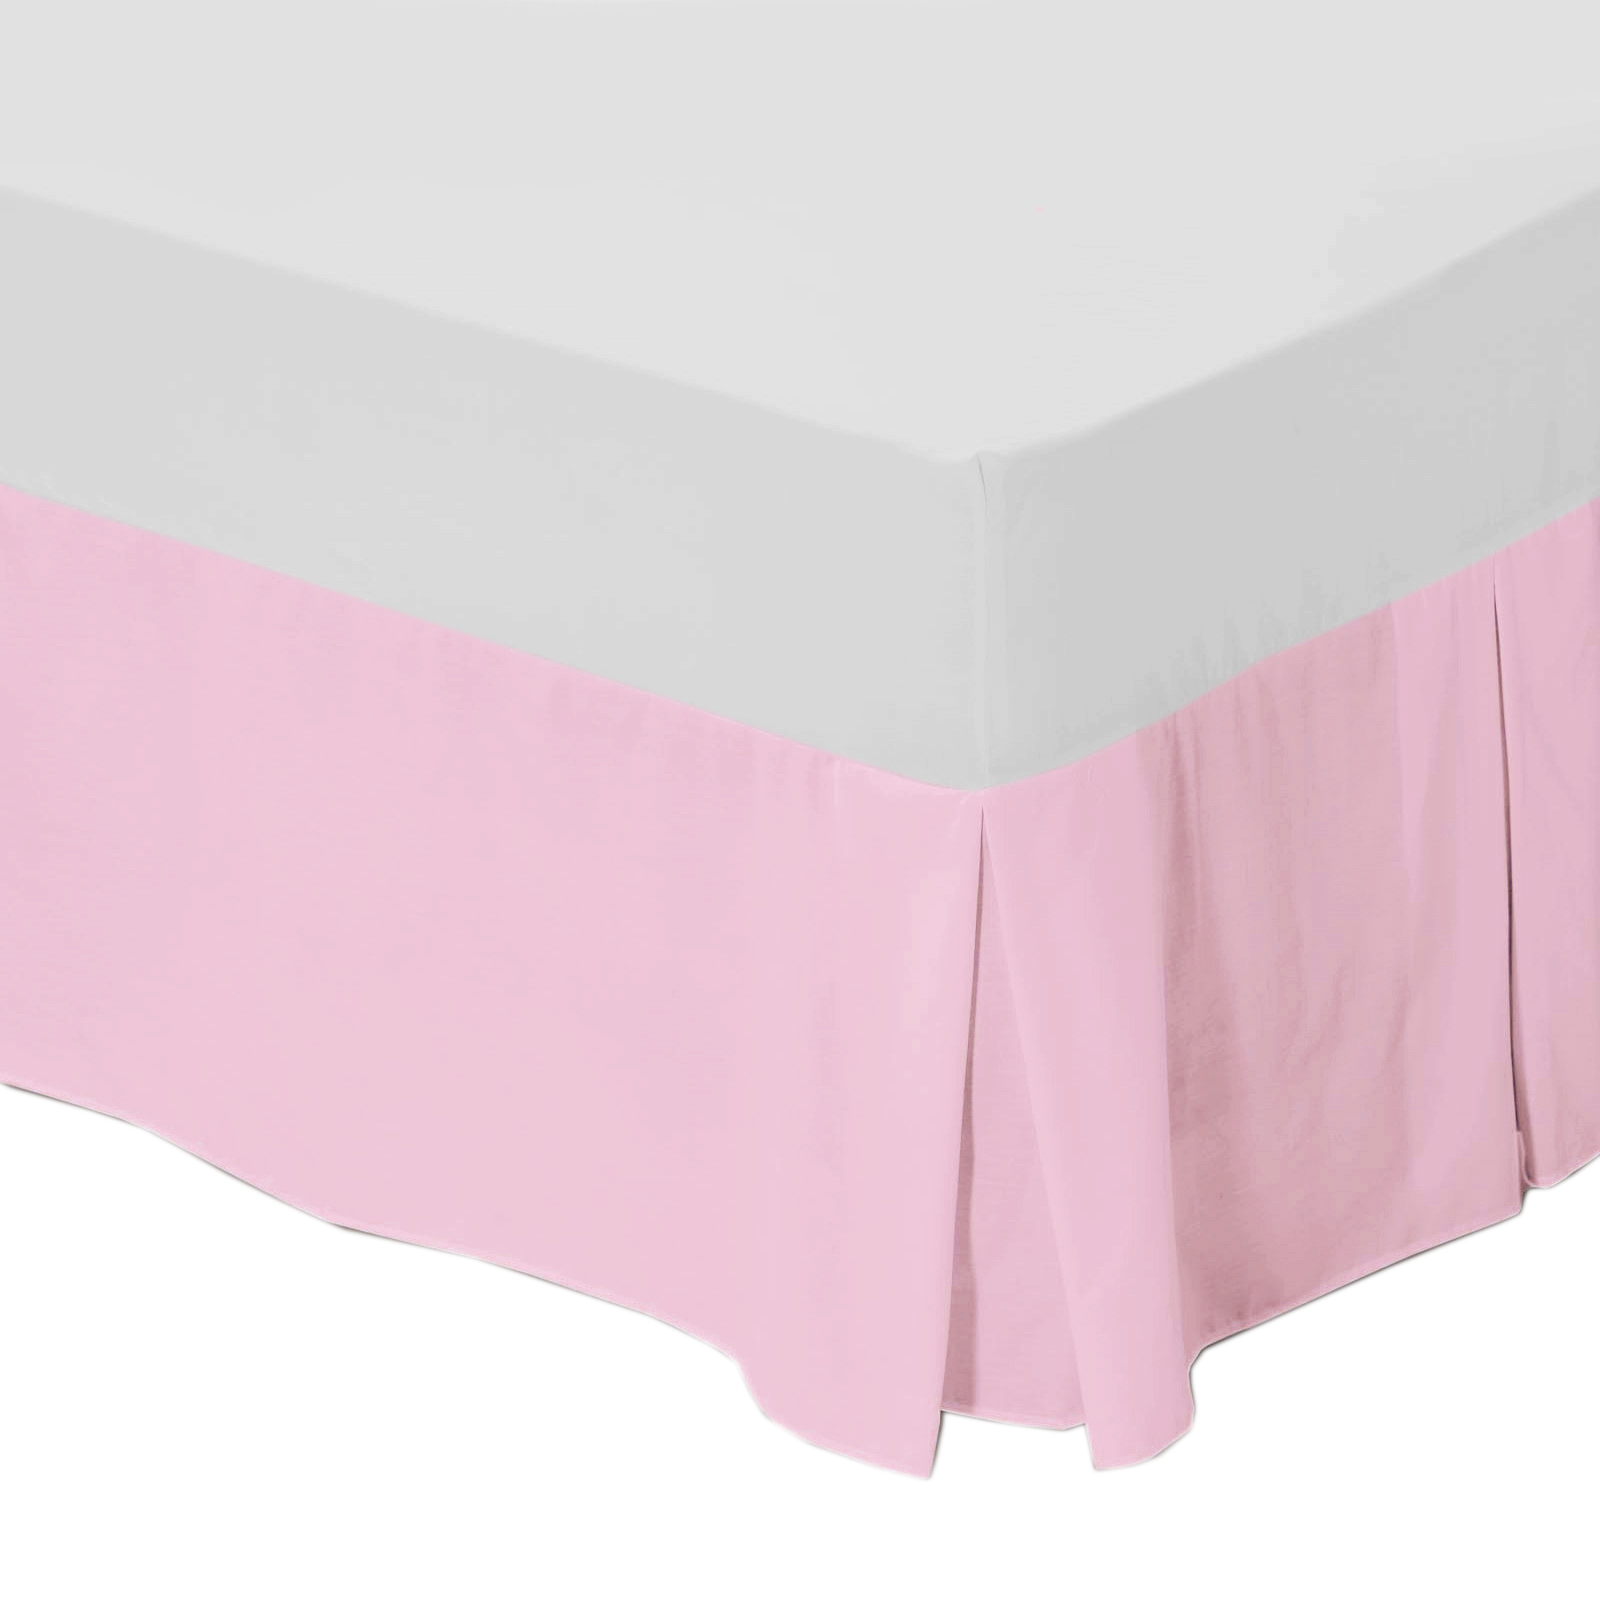 Plain Platform Base Valance Bed Sheet Polycotton Bedding